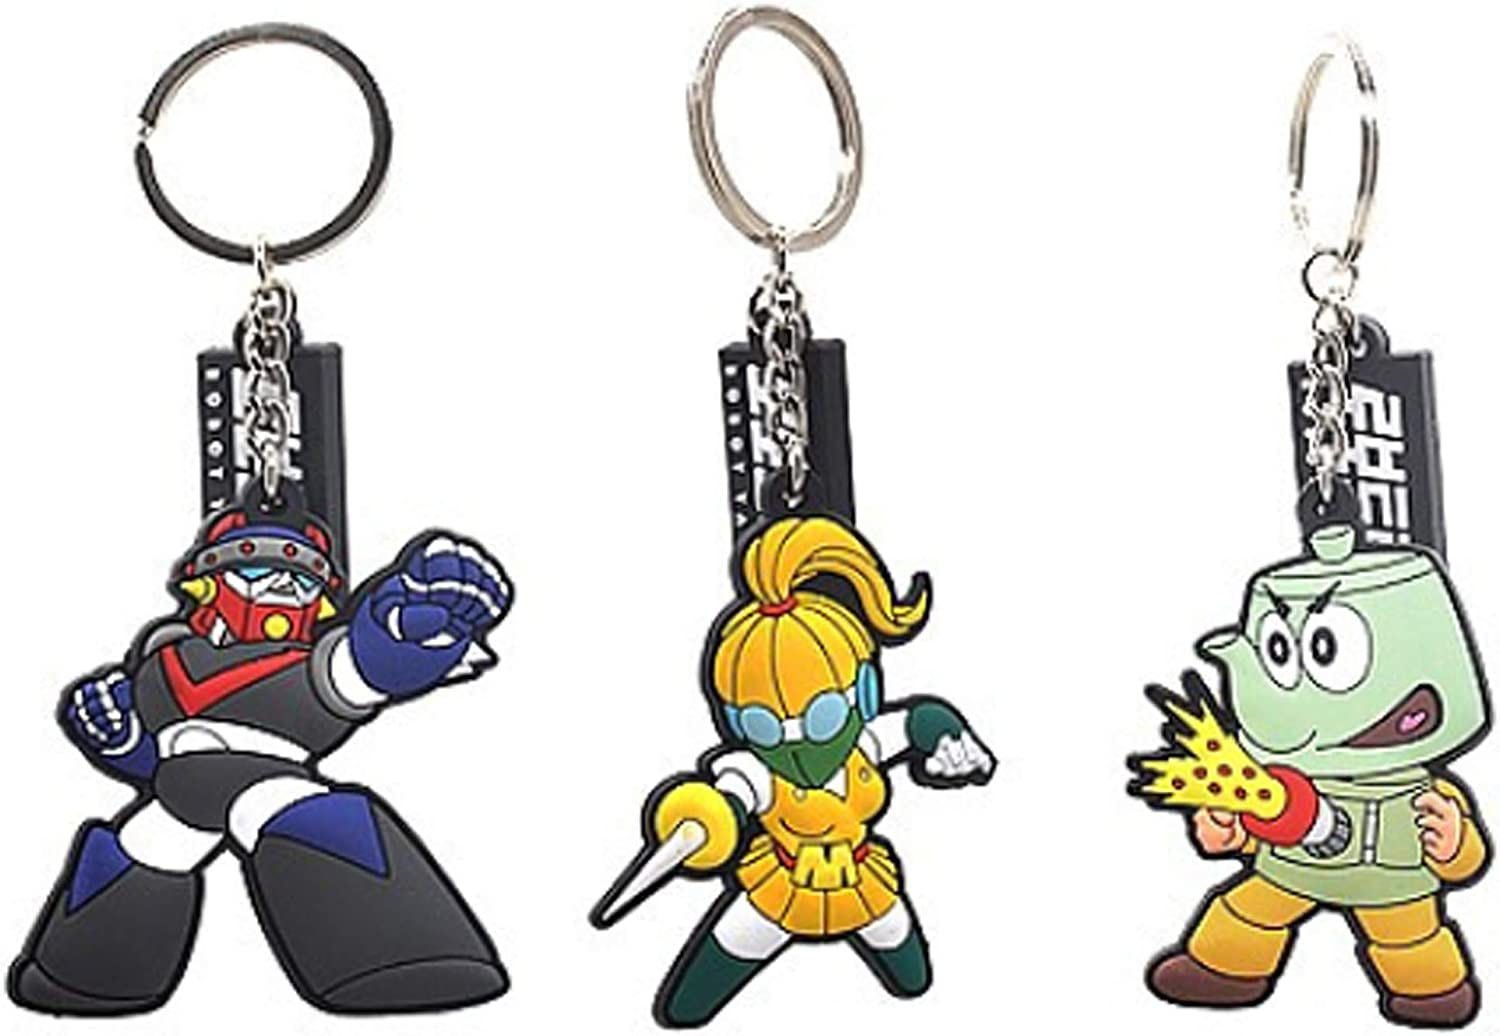 3Pcs Key Ring Large special price !! Set Korean Robot Decor for Character Room 70% OFF Outlet Christm